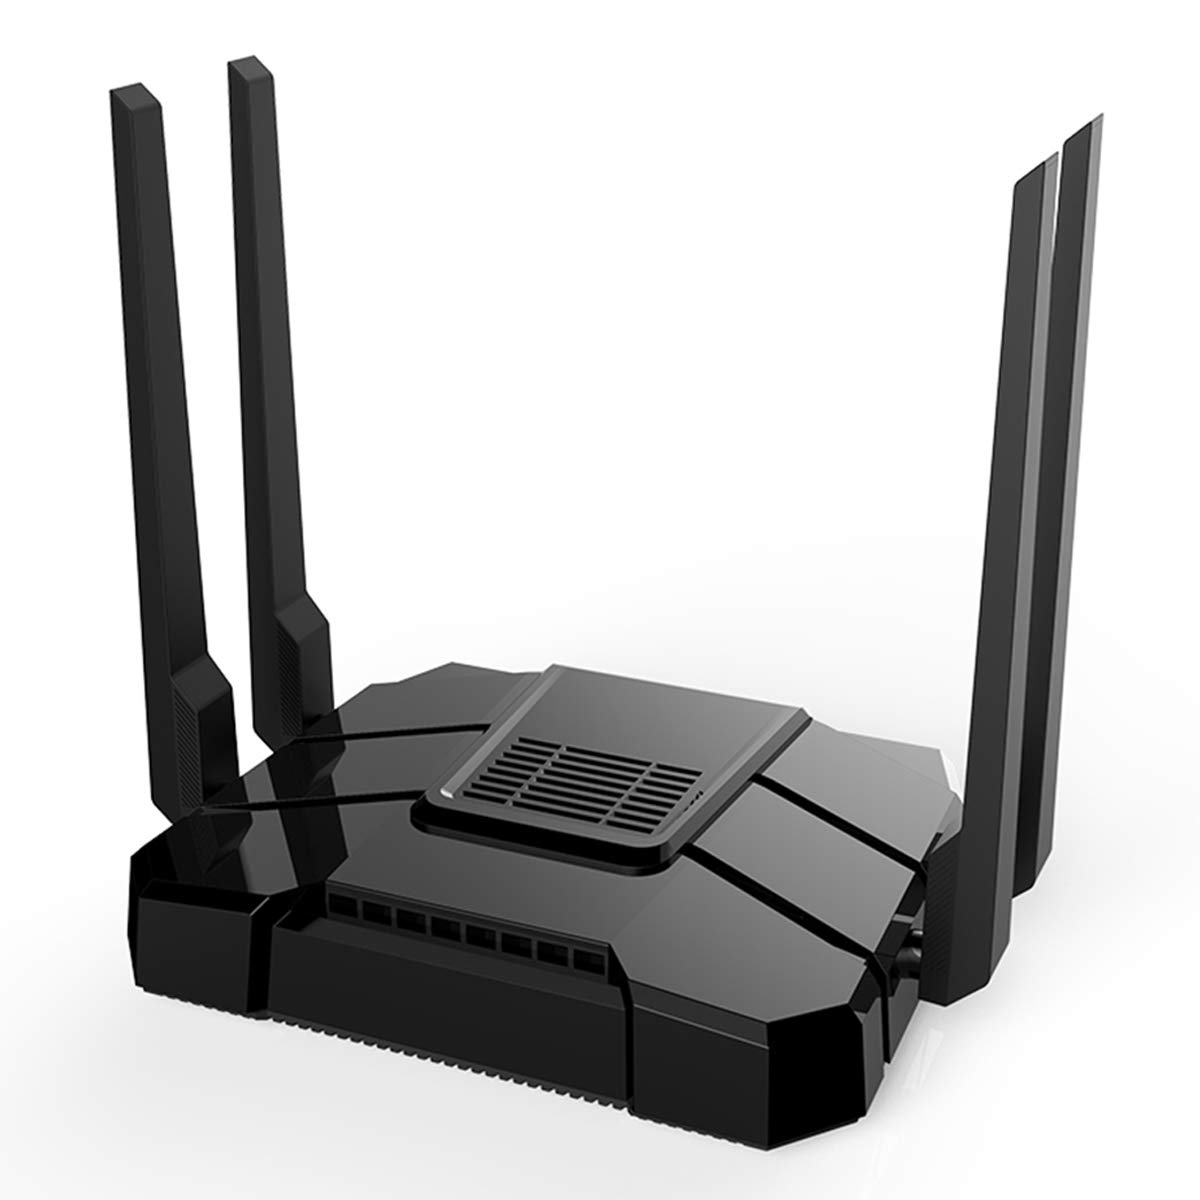 【Newest 2019】 Wireless WiFi Router Up to AC1200Mbps High Speed Home Office Router Ideal for Gaming & HD Video Streaming Works Great with Any Wireless Internet by Flow.month